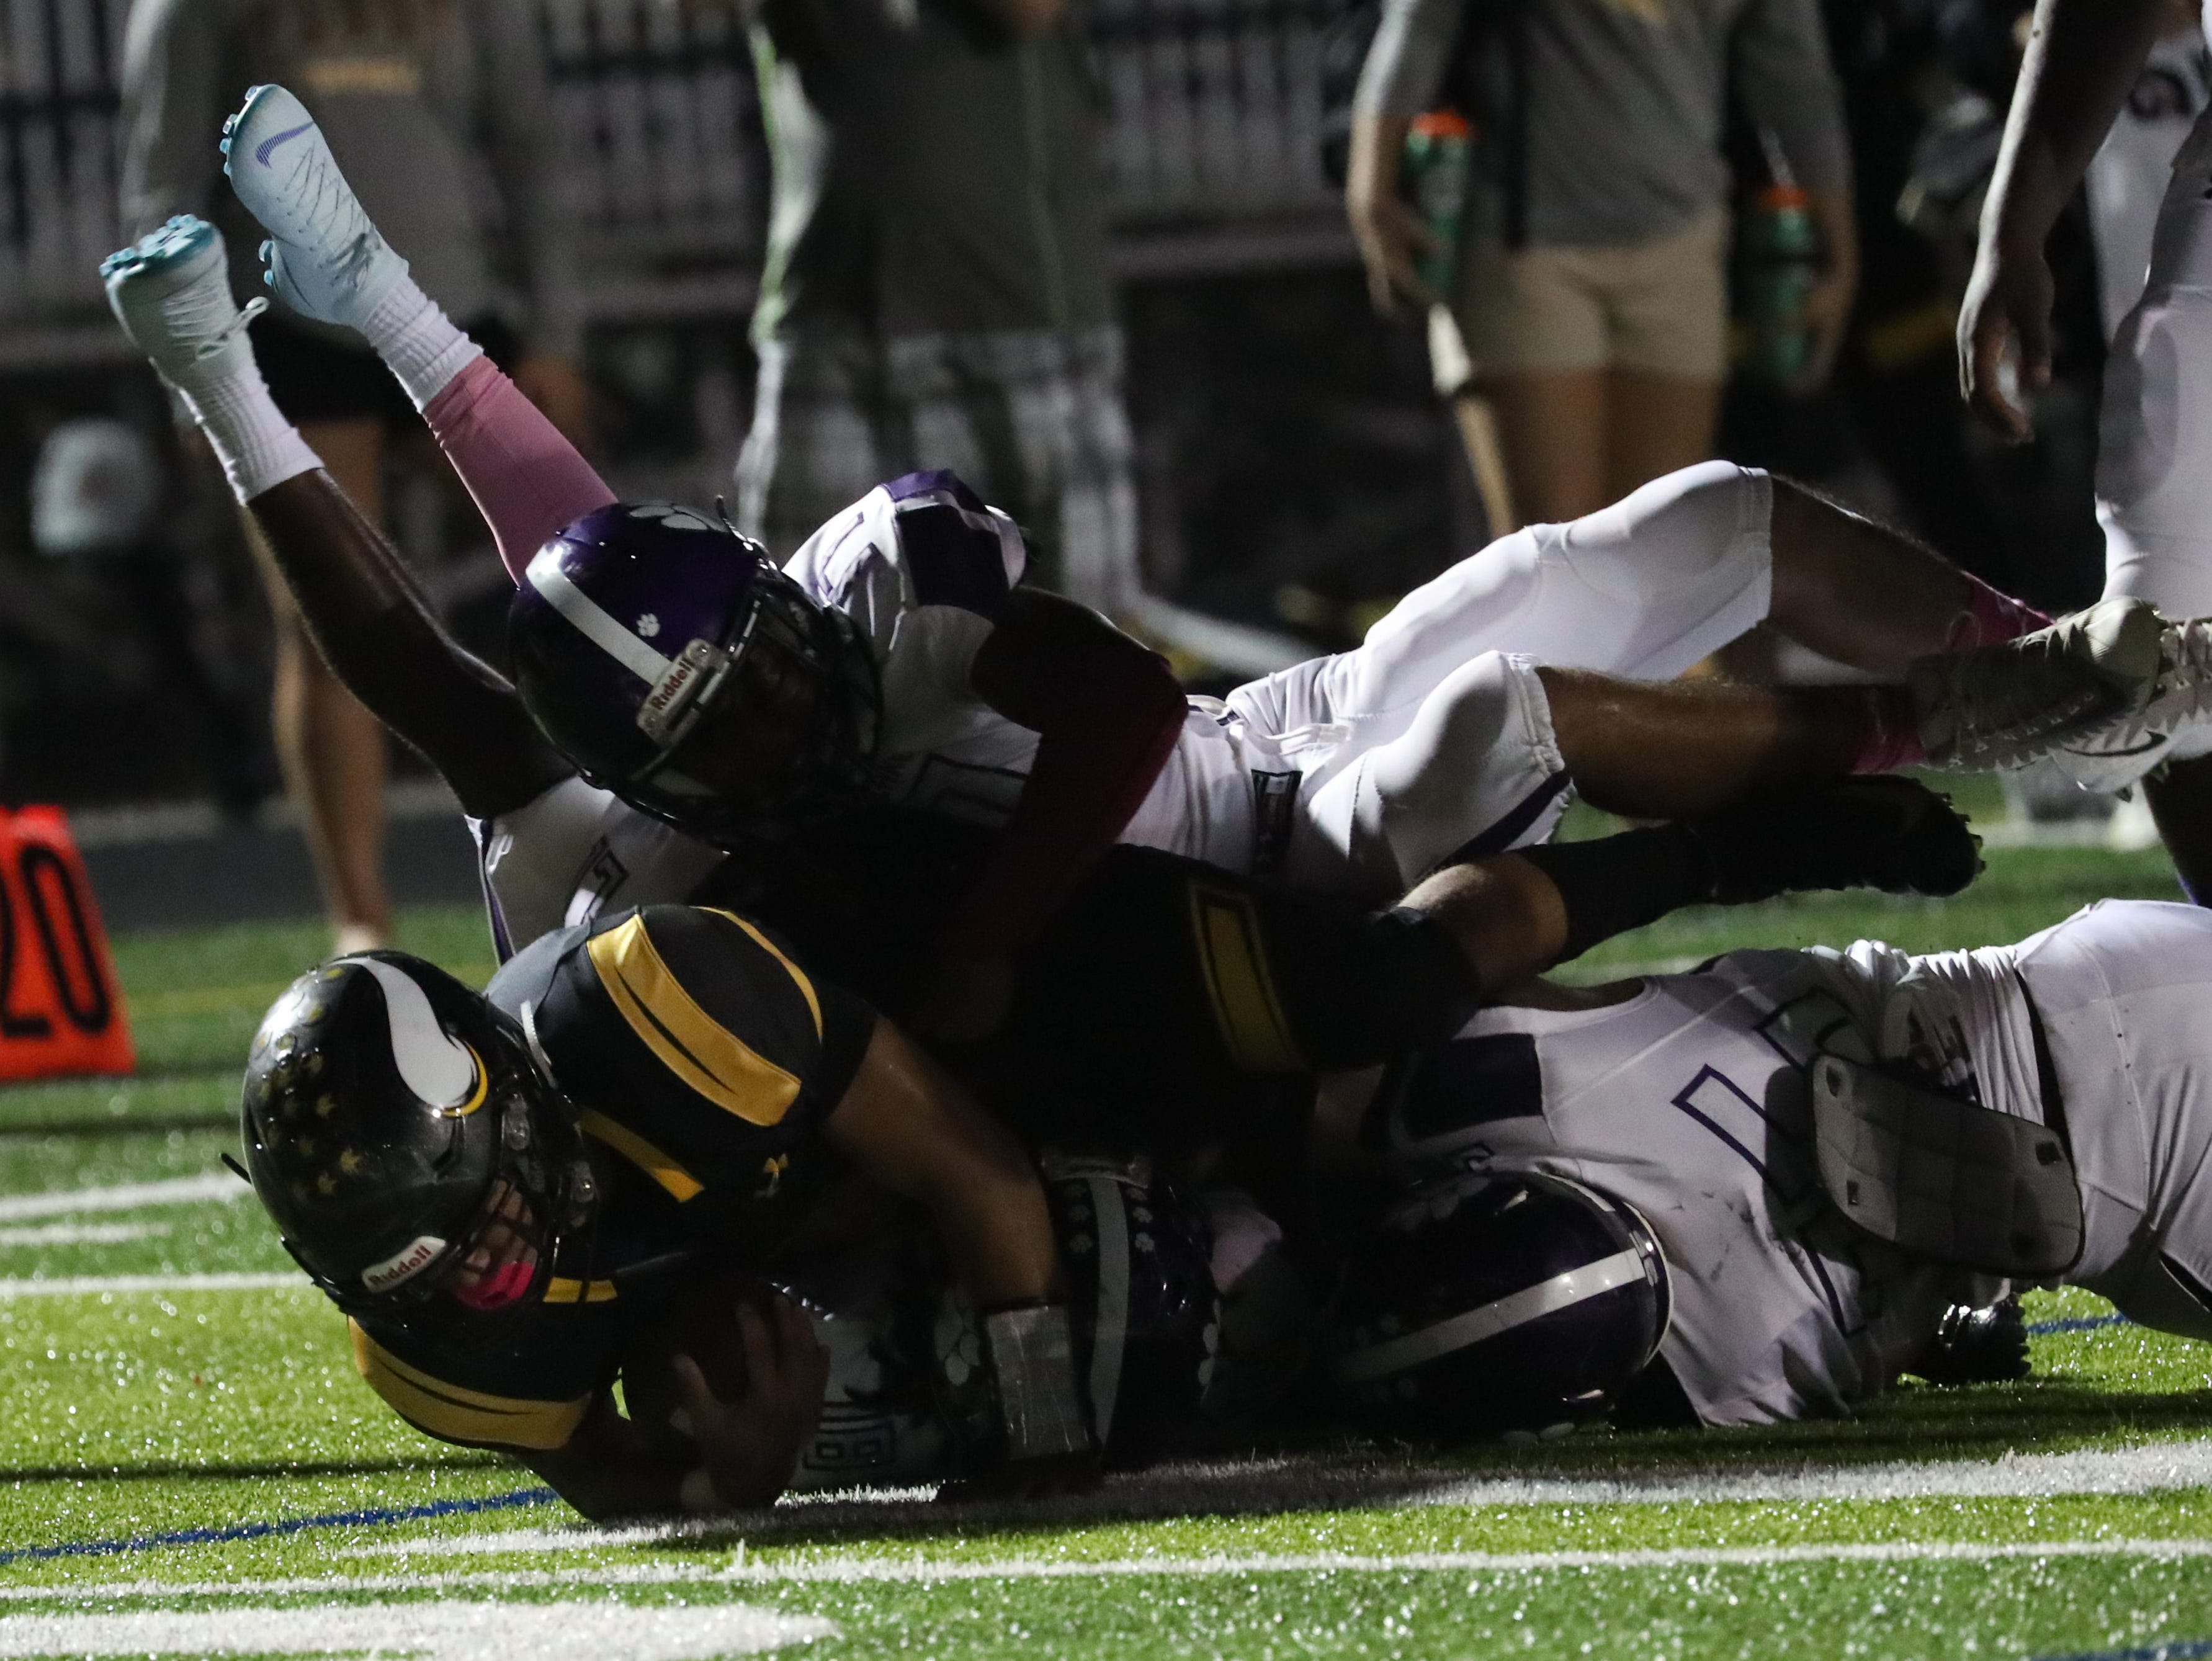 Bishop Verot takes on Cypress Lake in high school football on Friday, October 5, 2018, at Bishop Verot High School.